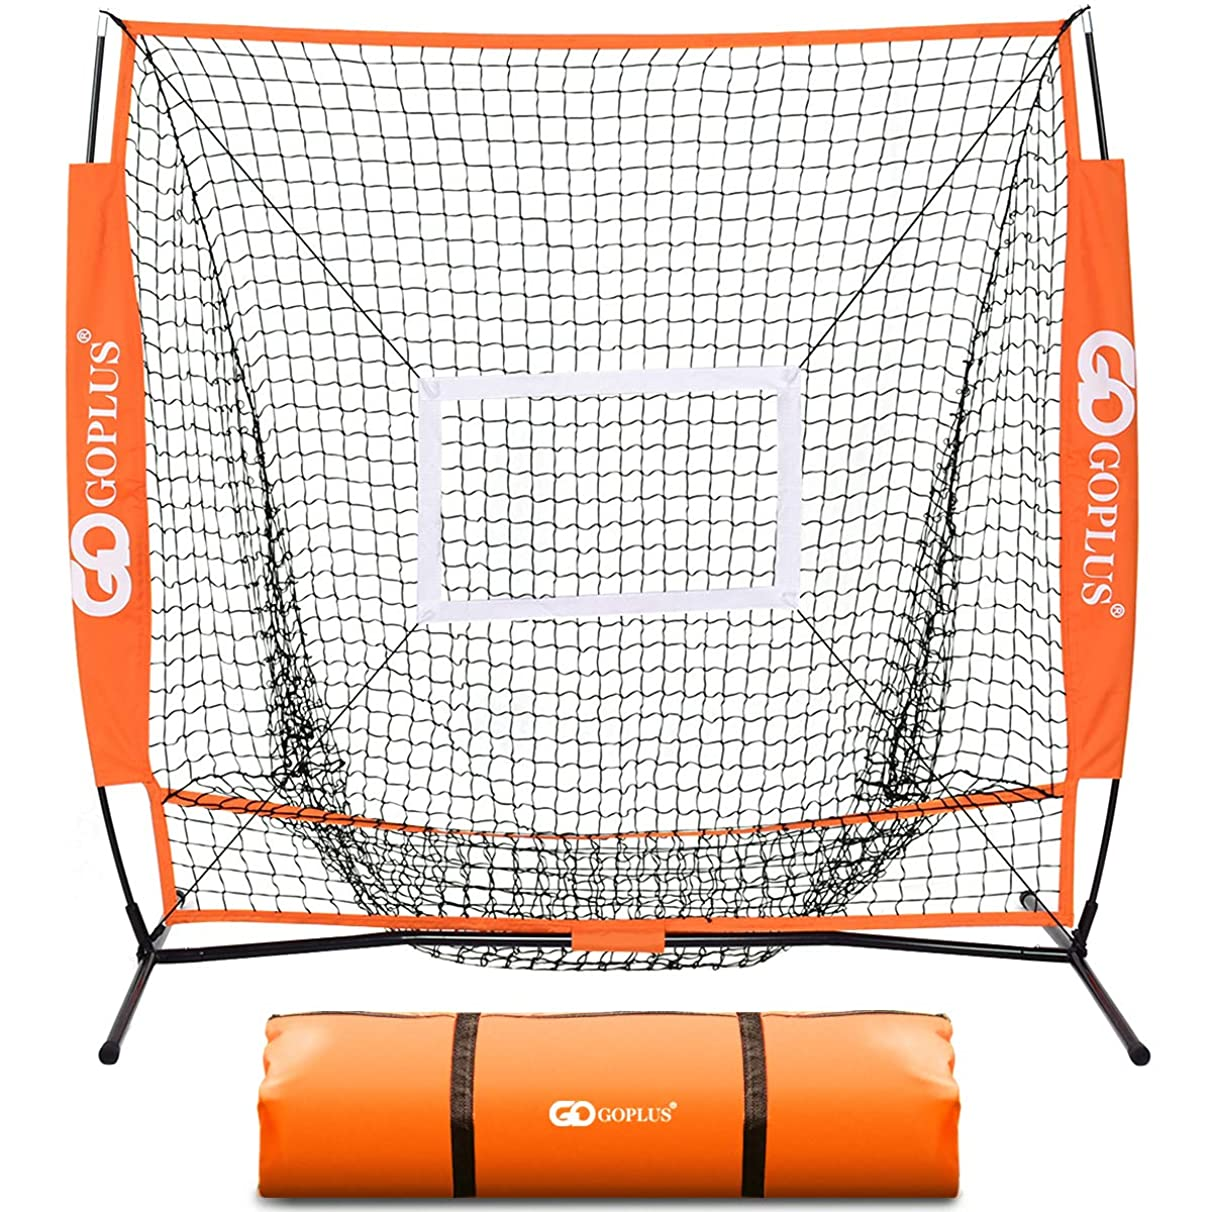 Goplus 5'×5' Baseball & Softball Net Portable Practice Net Large Mouth Outdoor Sports Net for Hitting, Pitching, Batting, Fielding and Catching w/Bow Frame & Carry Bag